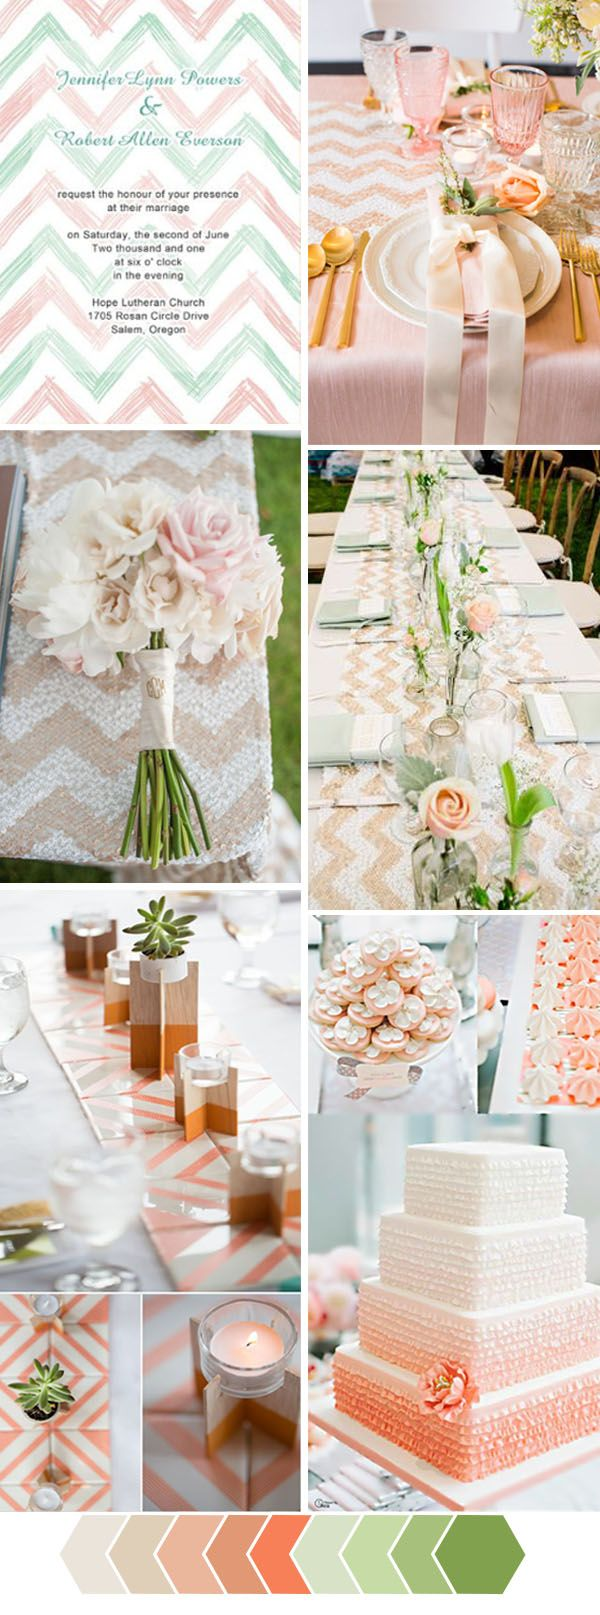 Wedding decorations with wine bottles november 2018  best Theme Color and Style Ideas for Weddings images on